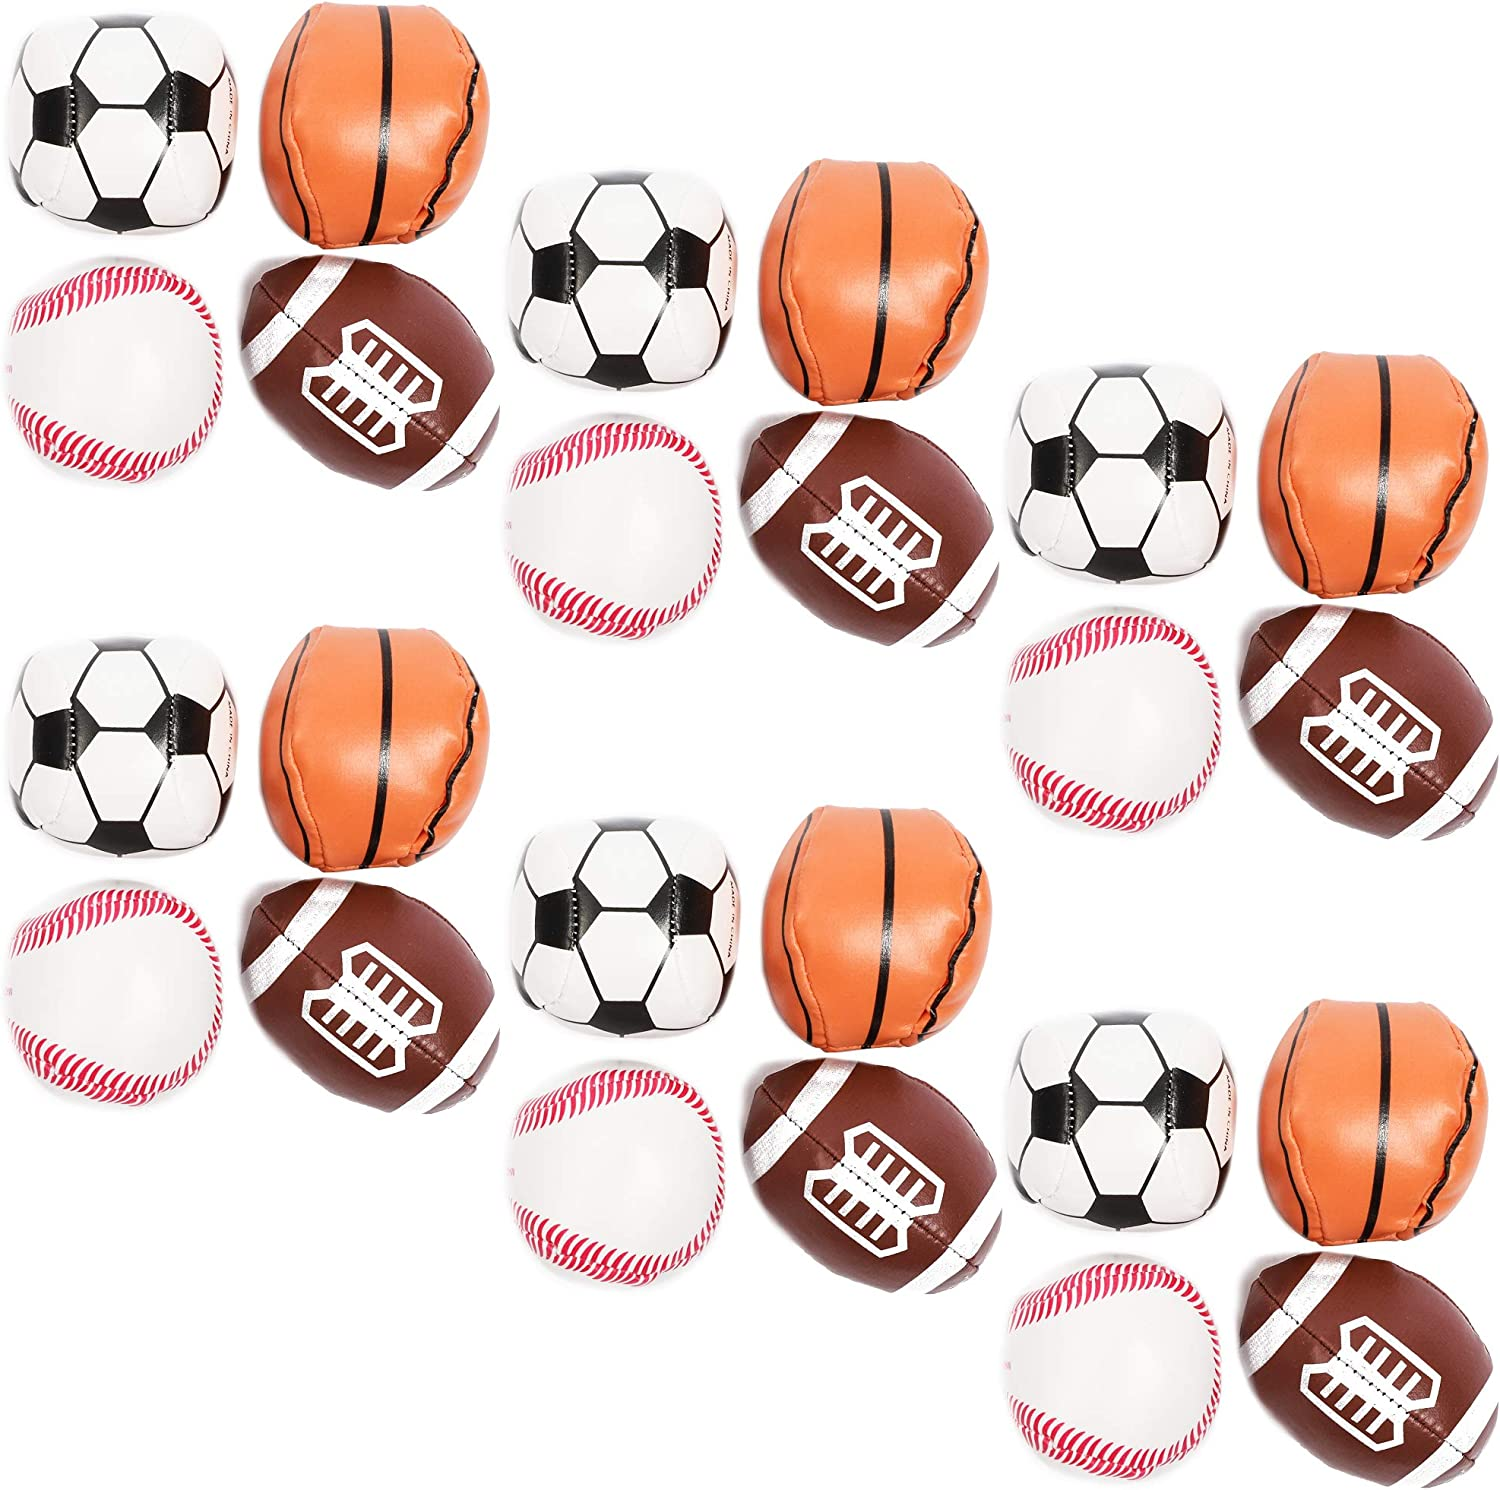 Foam Sports Balls for Party Favors, Squishy Stress Reliever (24 Pack)